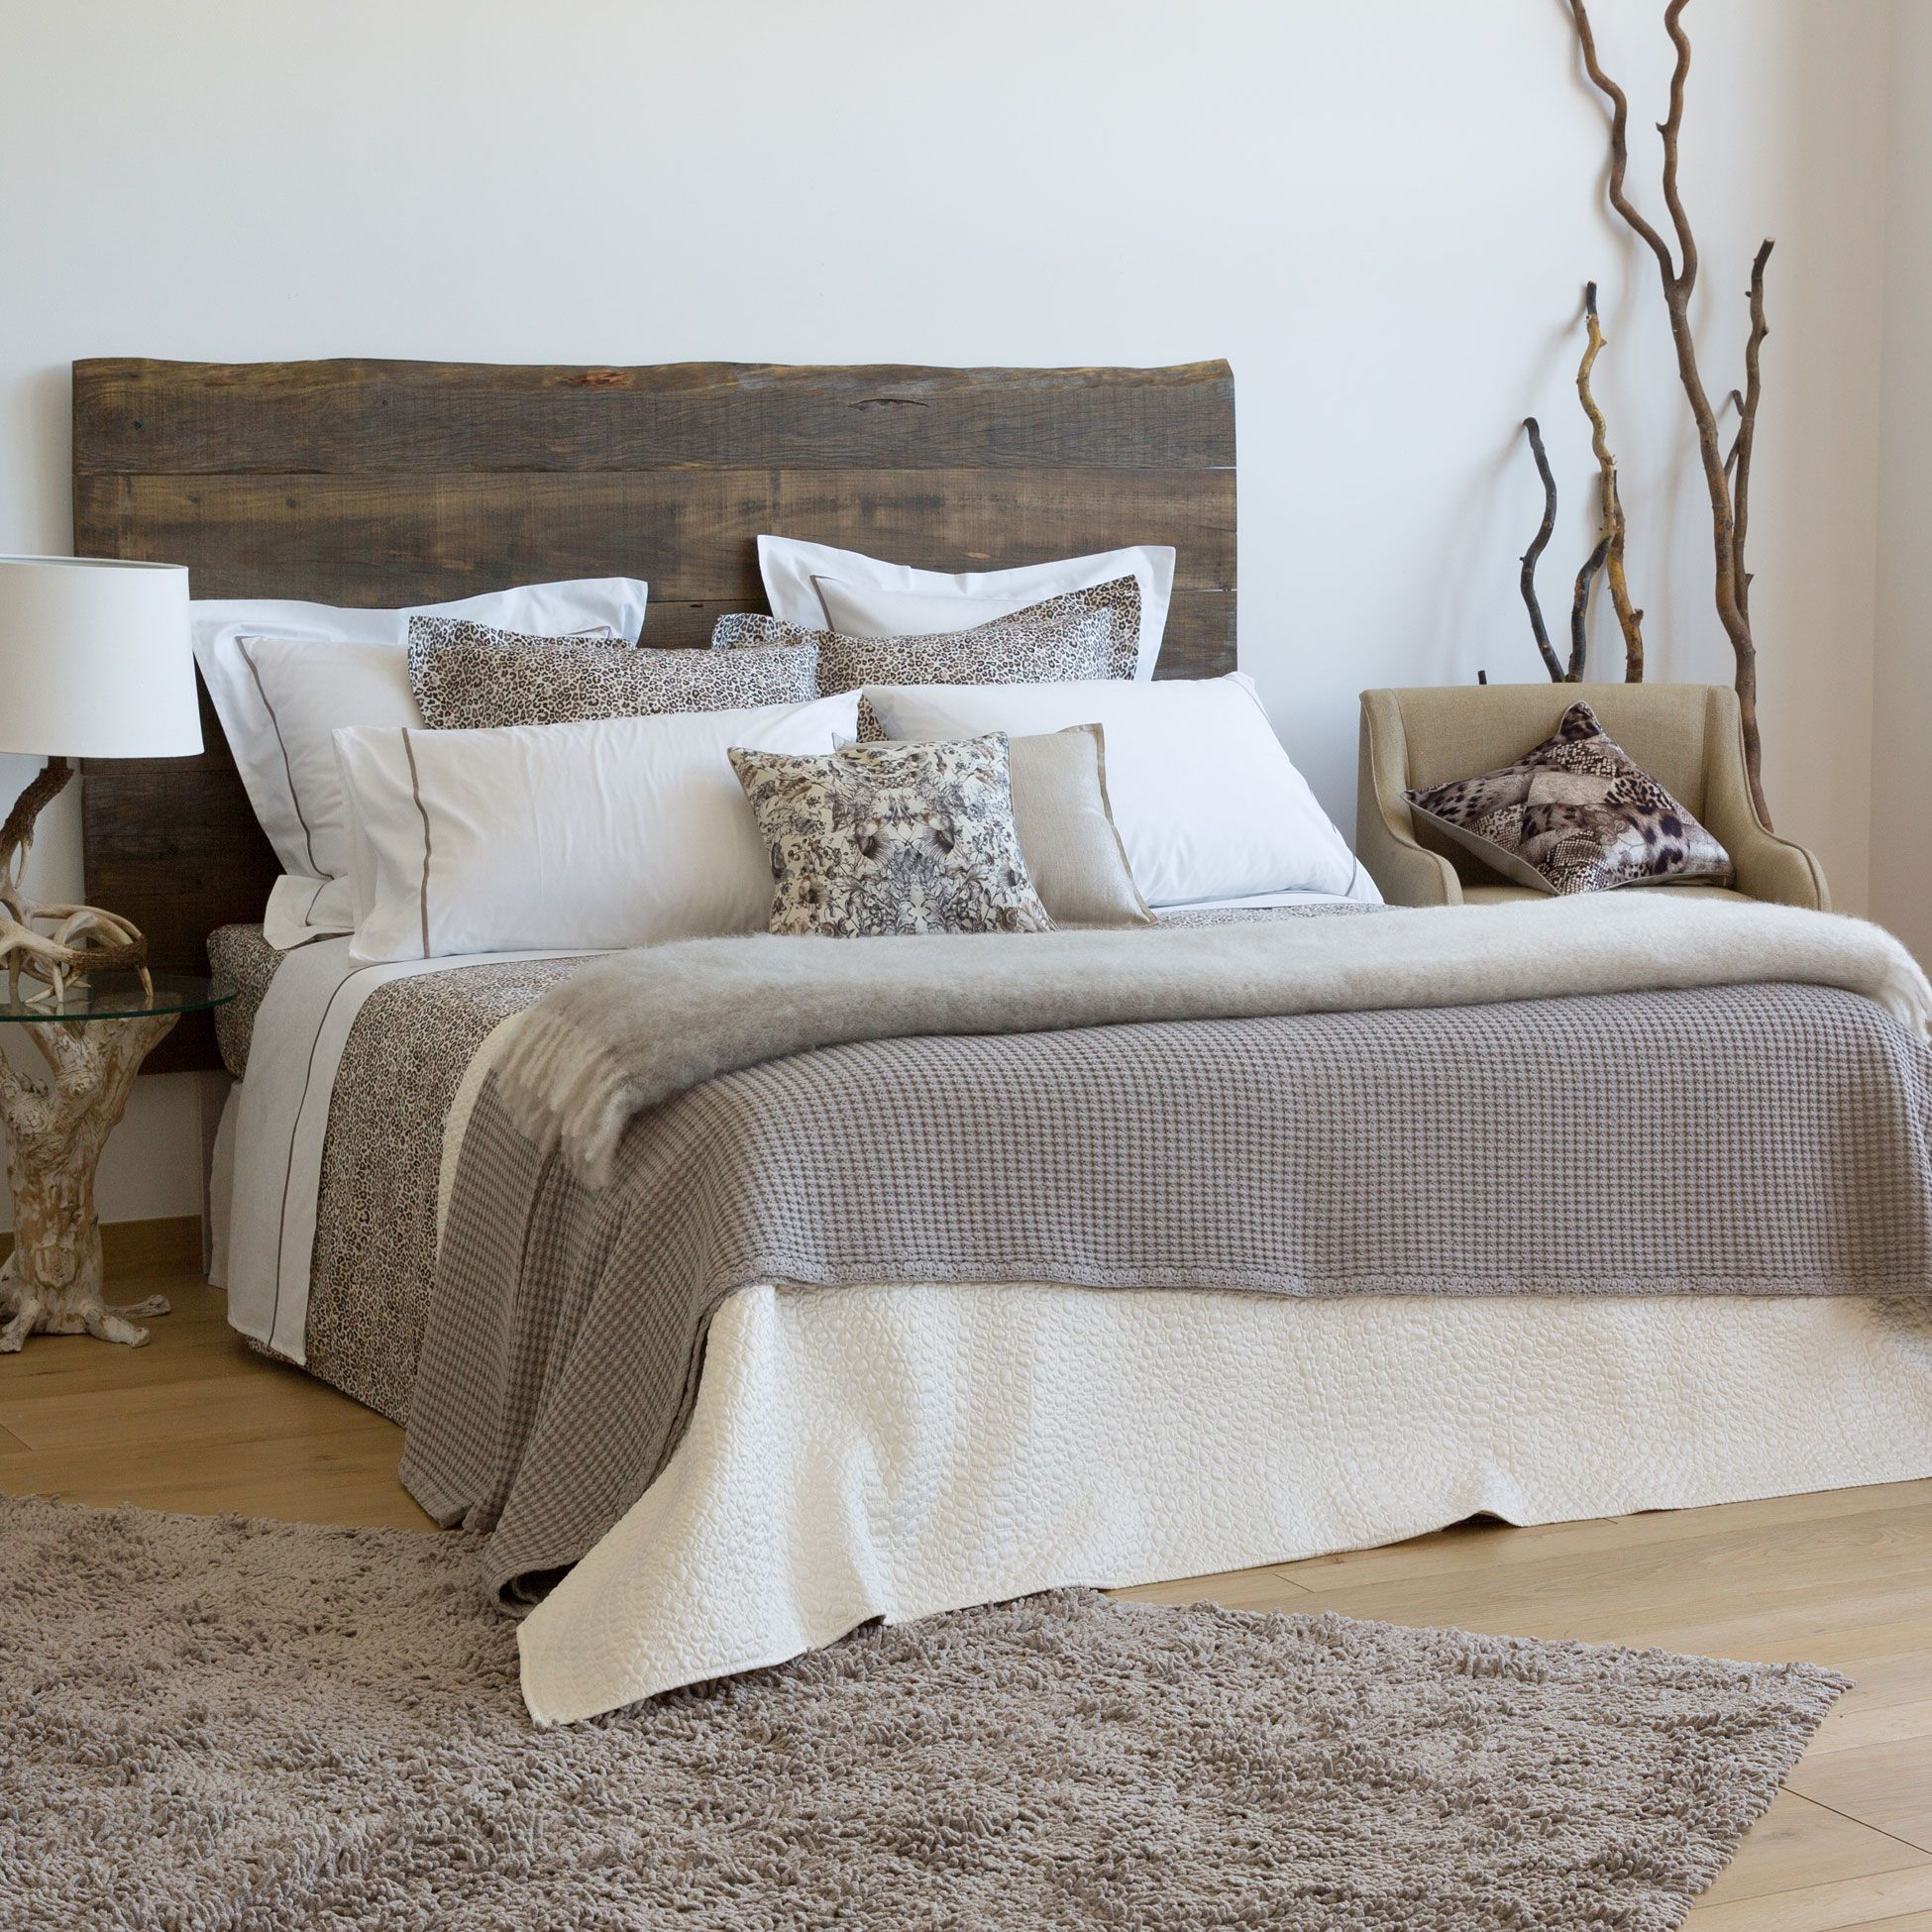 Ropa de cama Zara Home | Bedrooms, Bedspread and Master bedroom